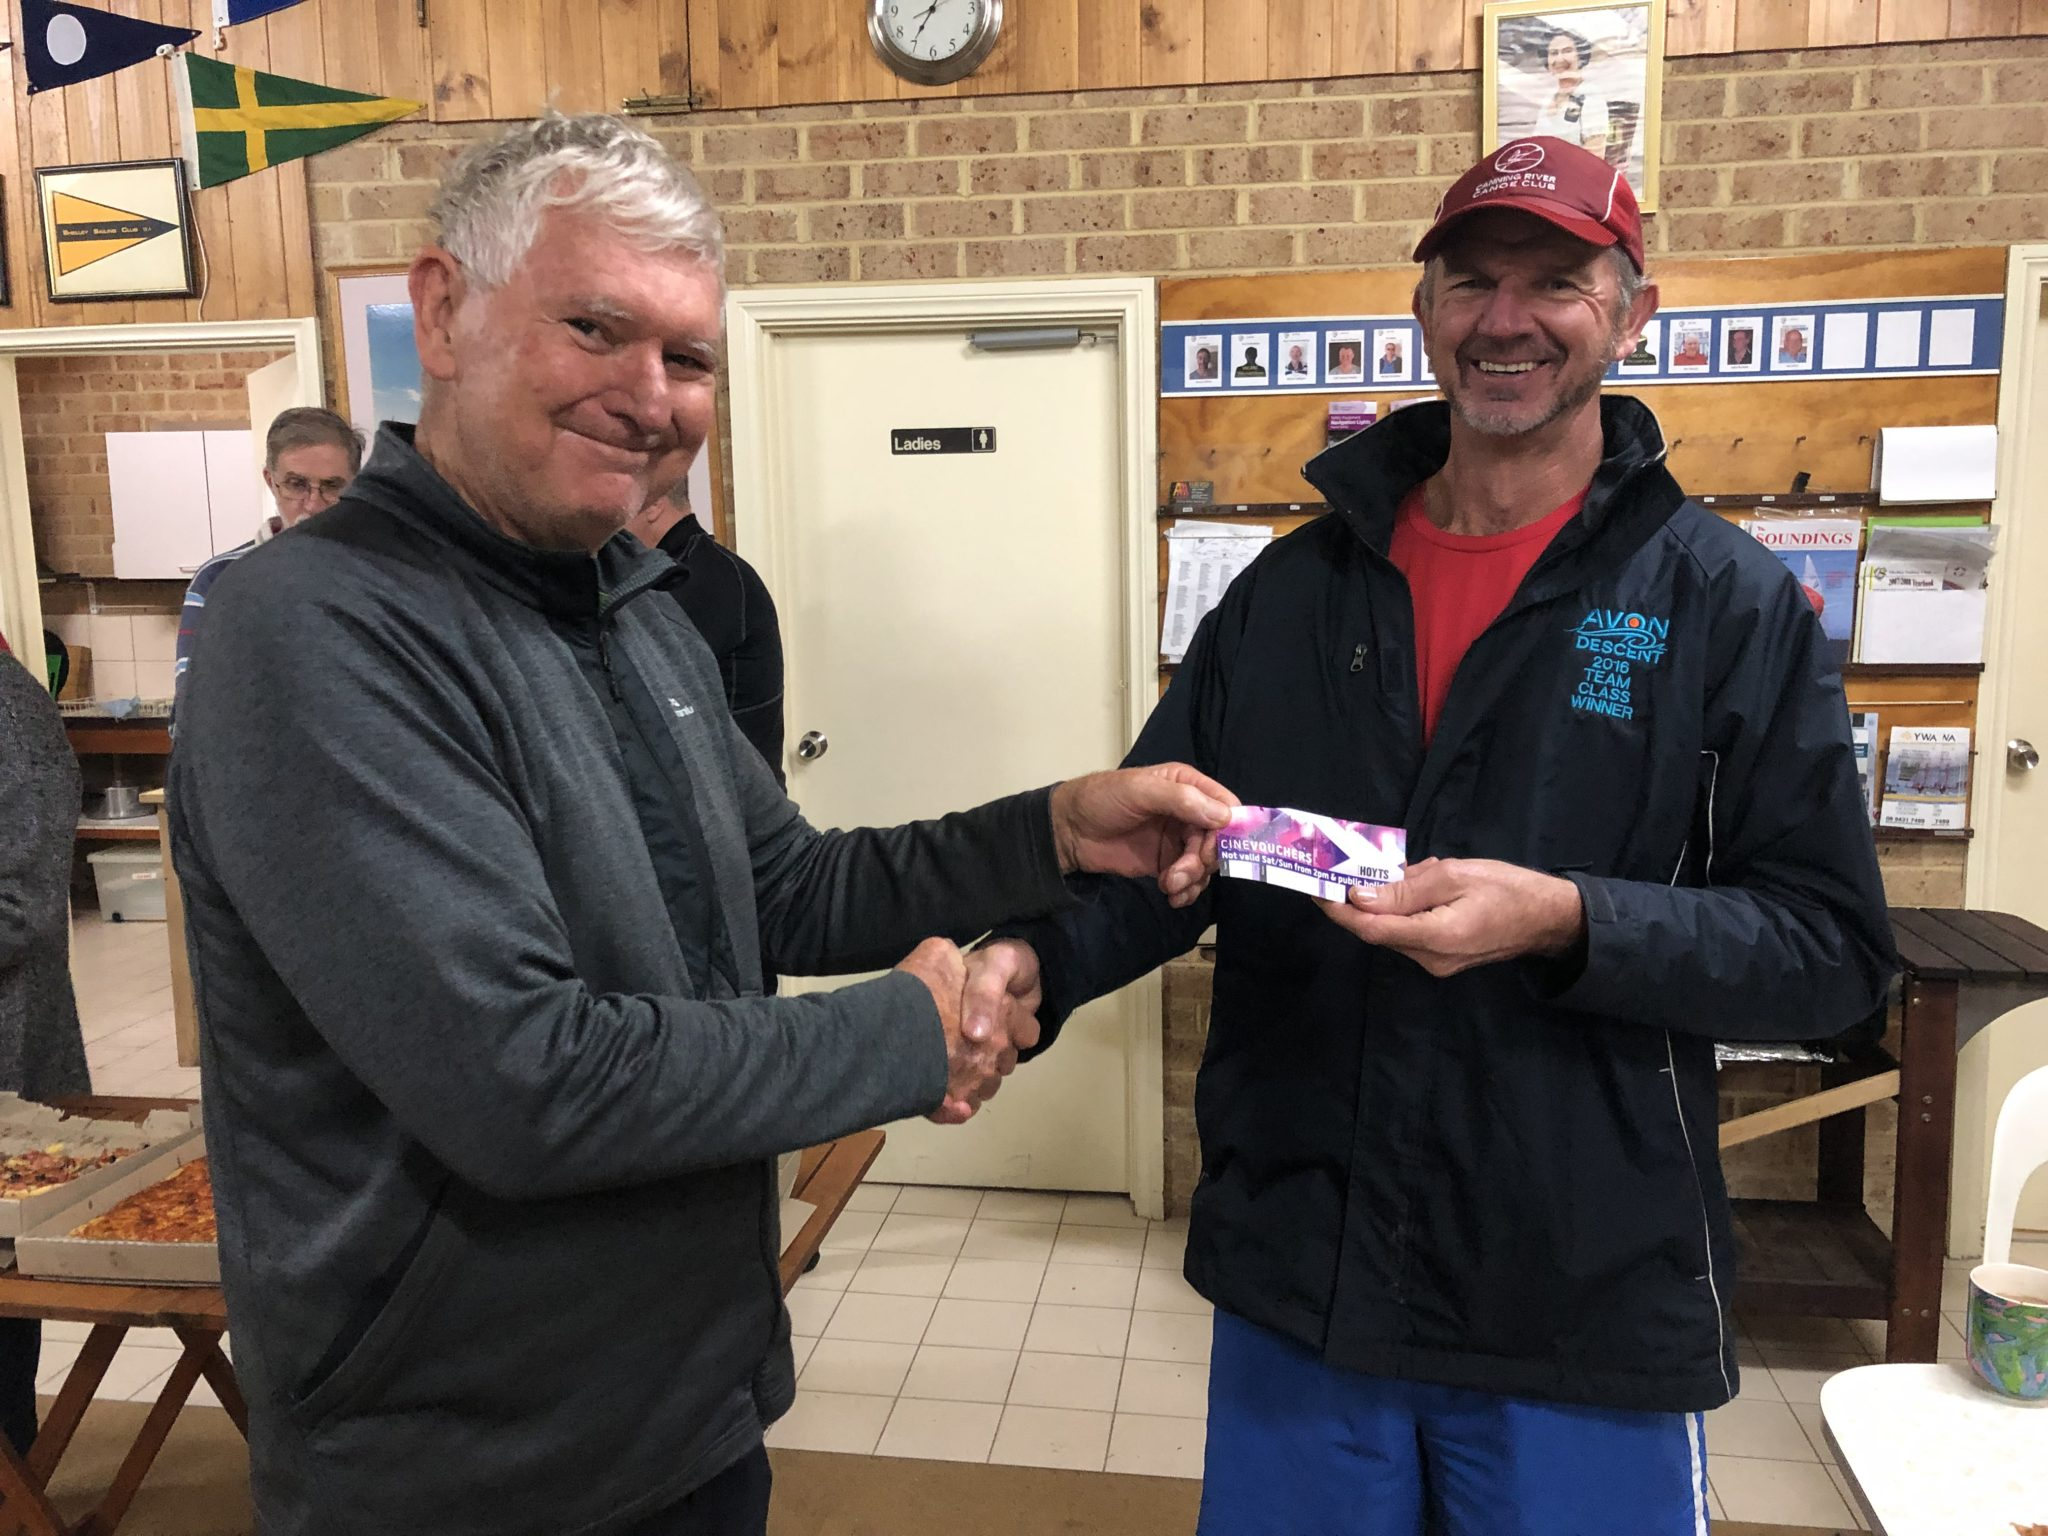 Tuesday 6th August 2019 : Tonight's photo shows club member Jerry Alderson presenting Dave MaCauley with the winners movie voucher.